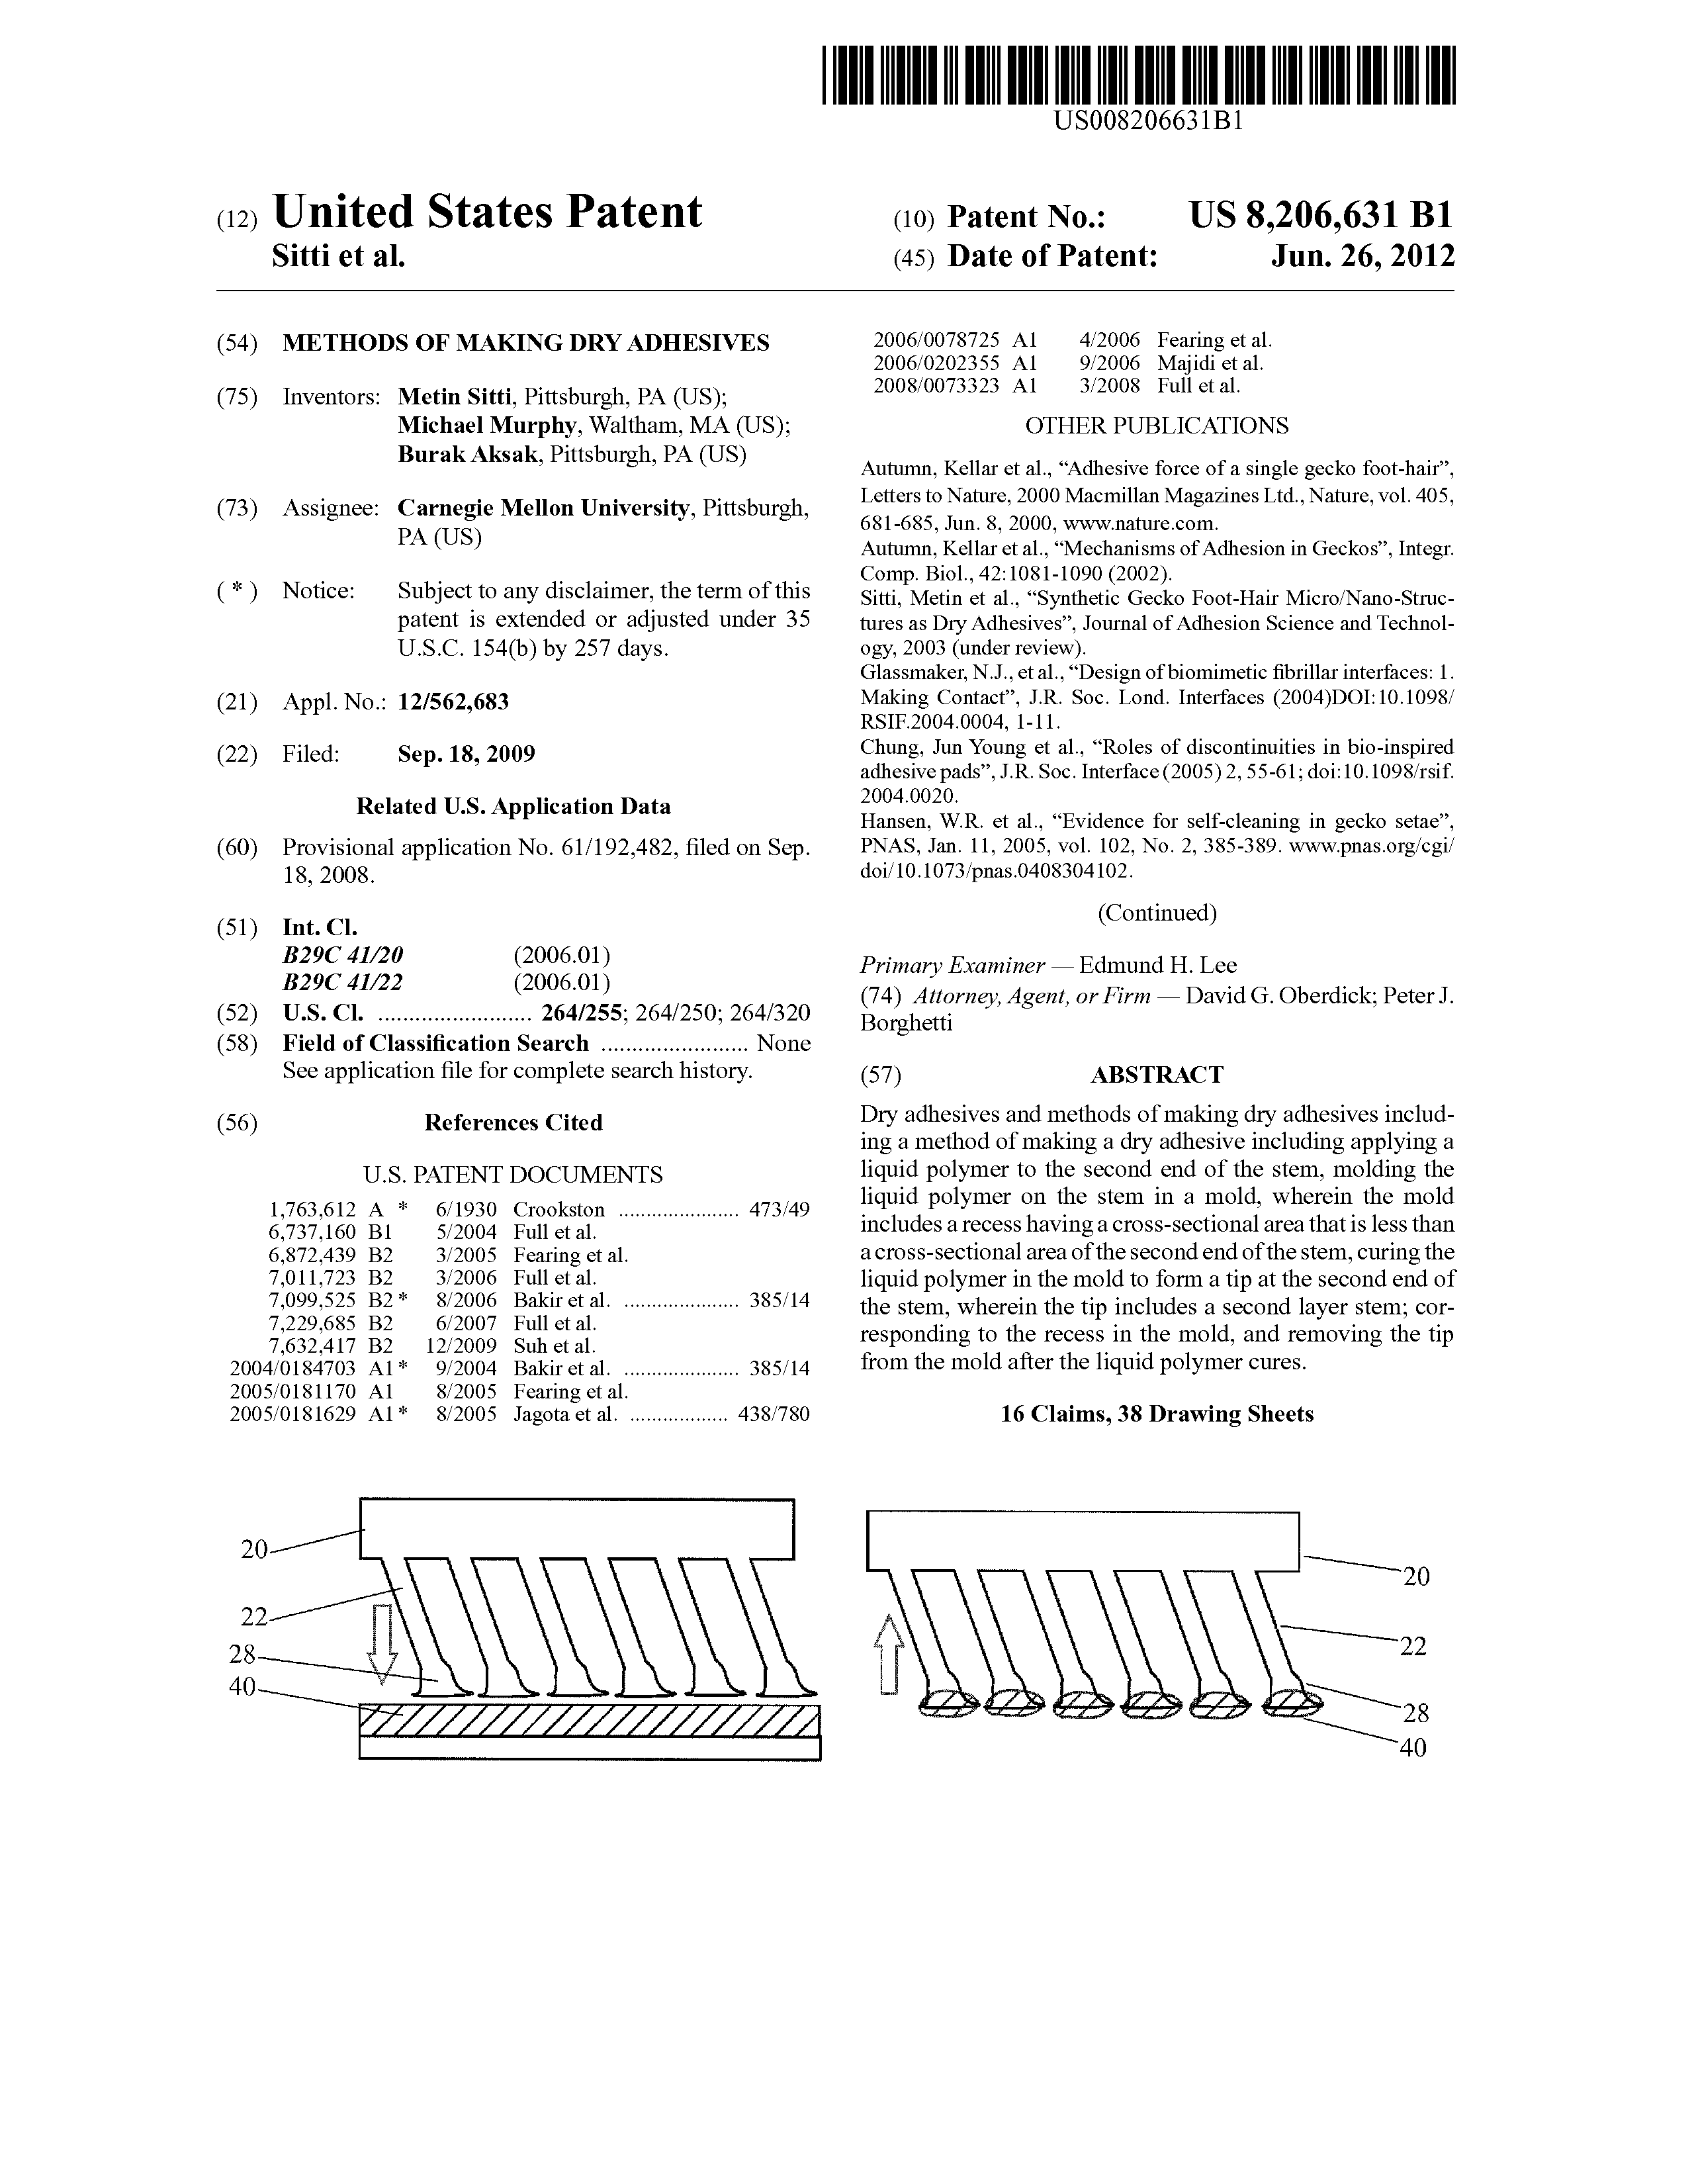 US 8206631 B1 - Methods Of Making Dry Adhesives - The Lens